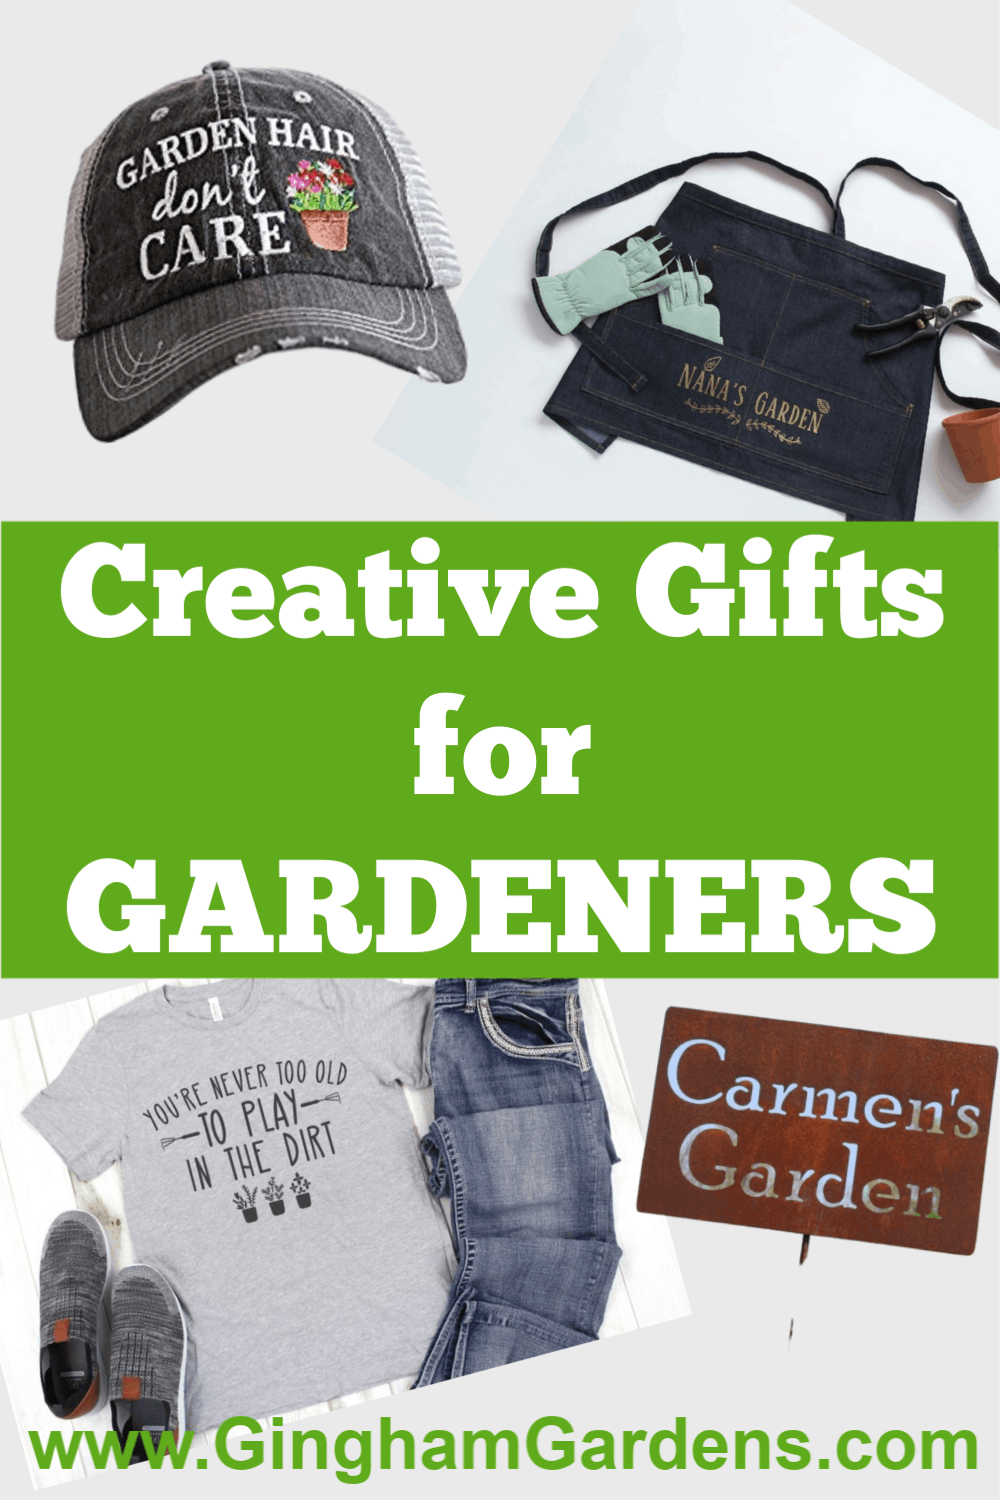 Images of Gifts with text overlay - Creative Gifts for Gardeners